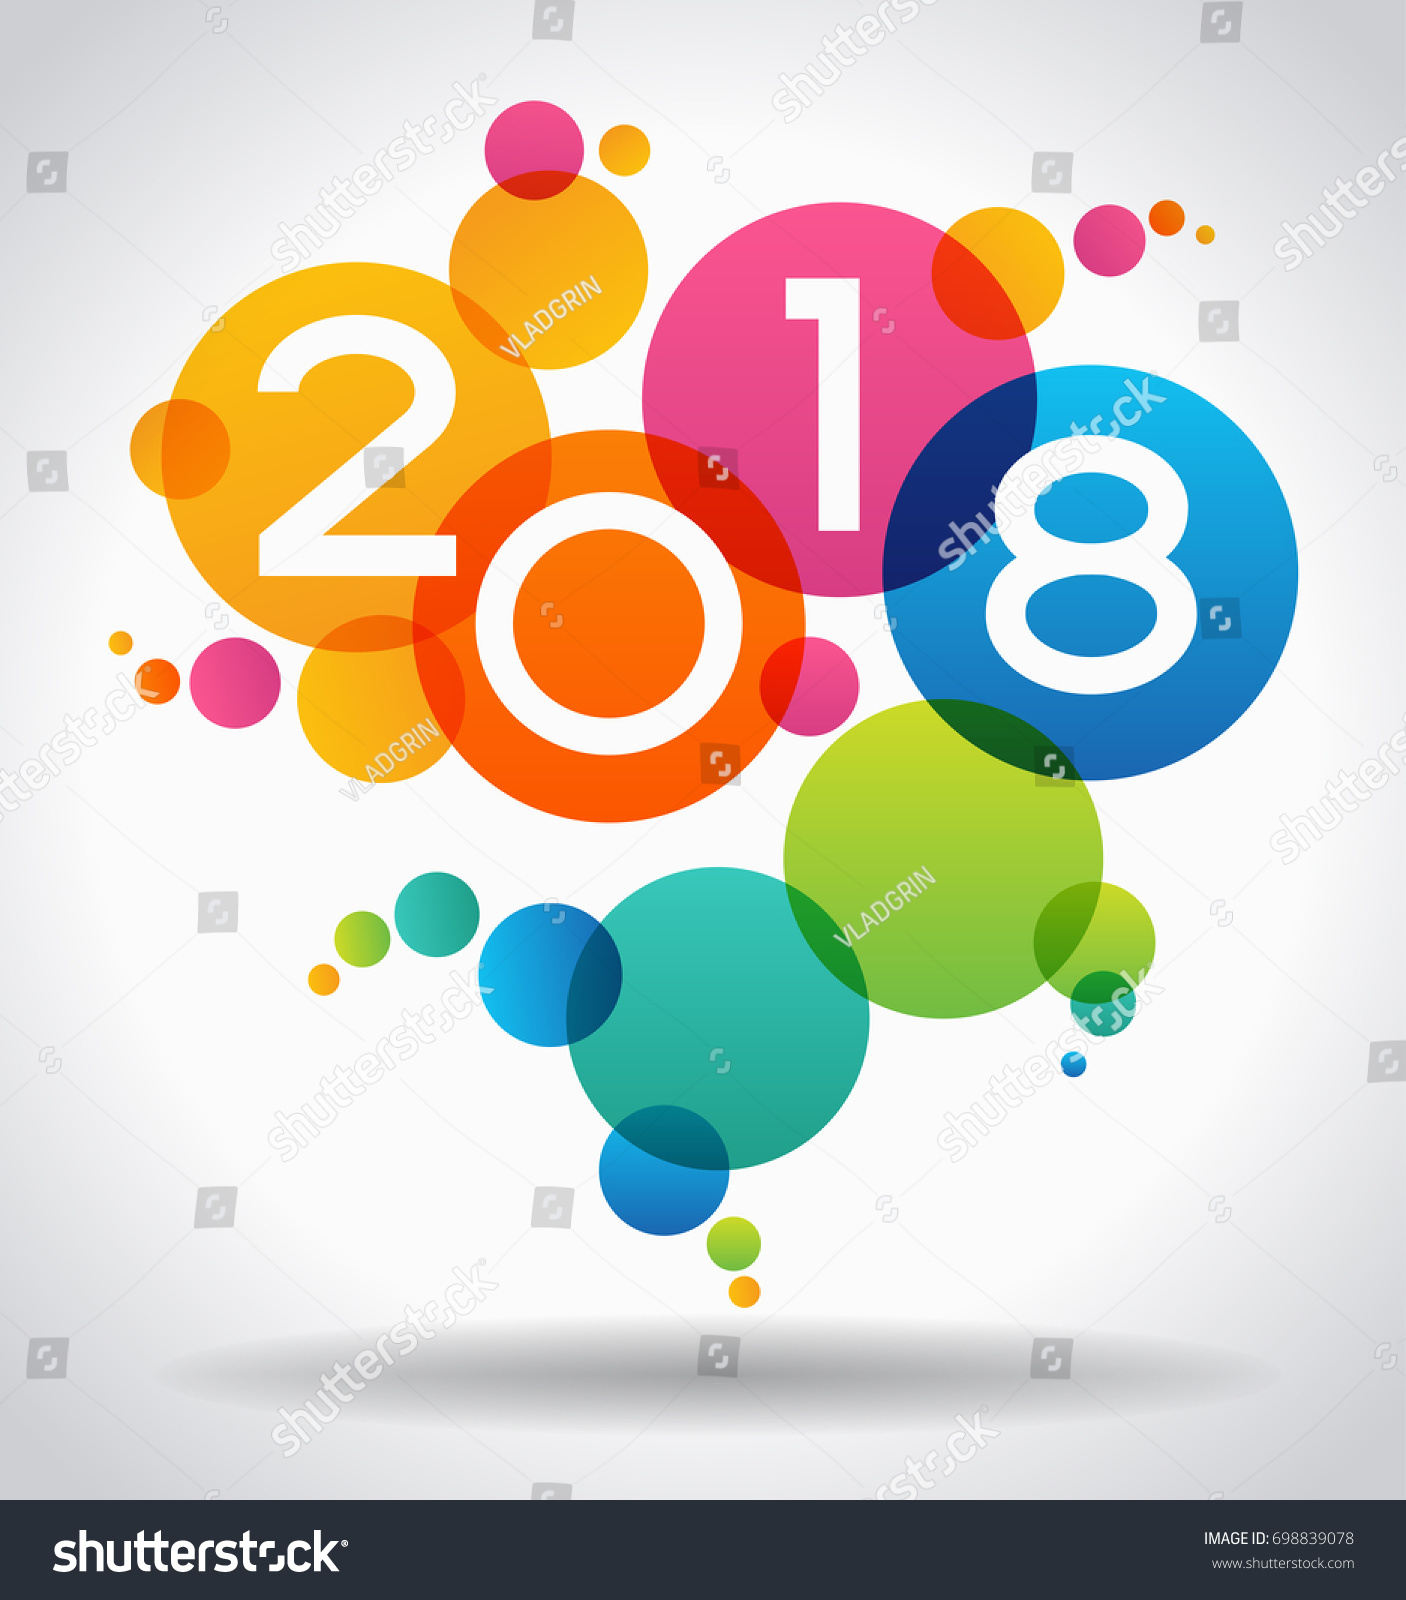 New Year, New Ideas – Marketing Ideas for contact@newsubsteam.ml With the new year just around the corner, you might be thinking it's time to freshen up your business with some cost-effective marketing ideas for